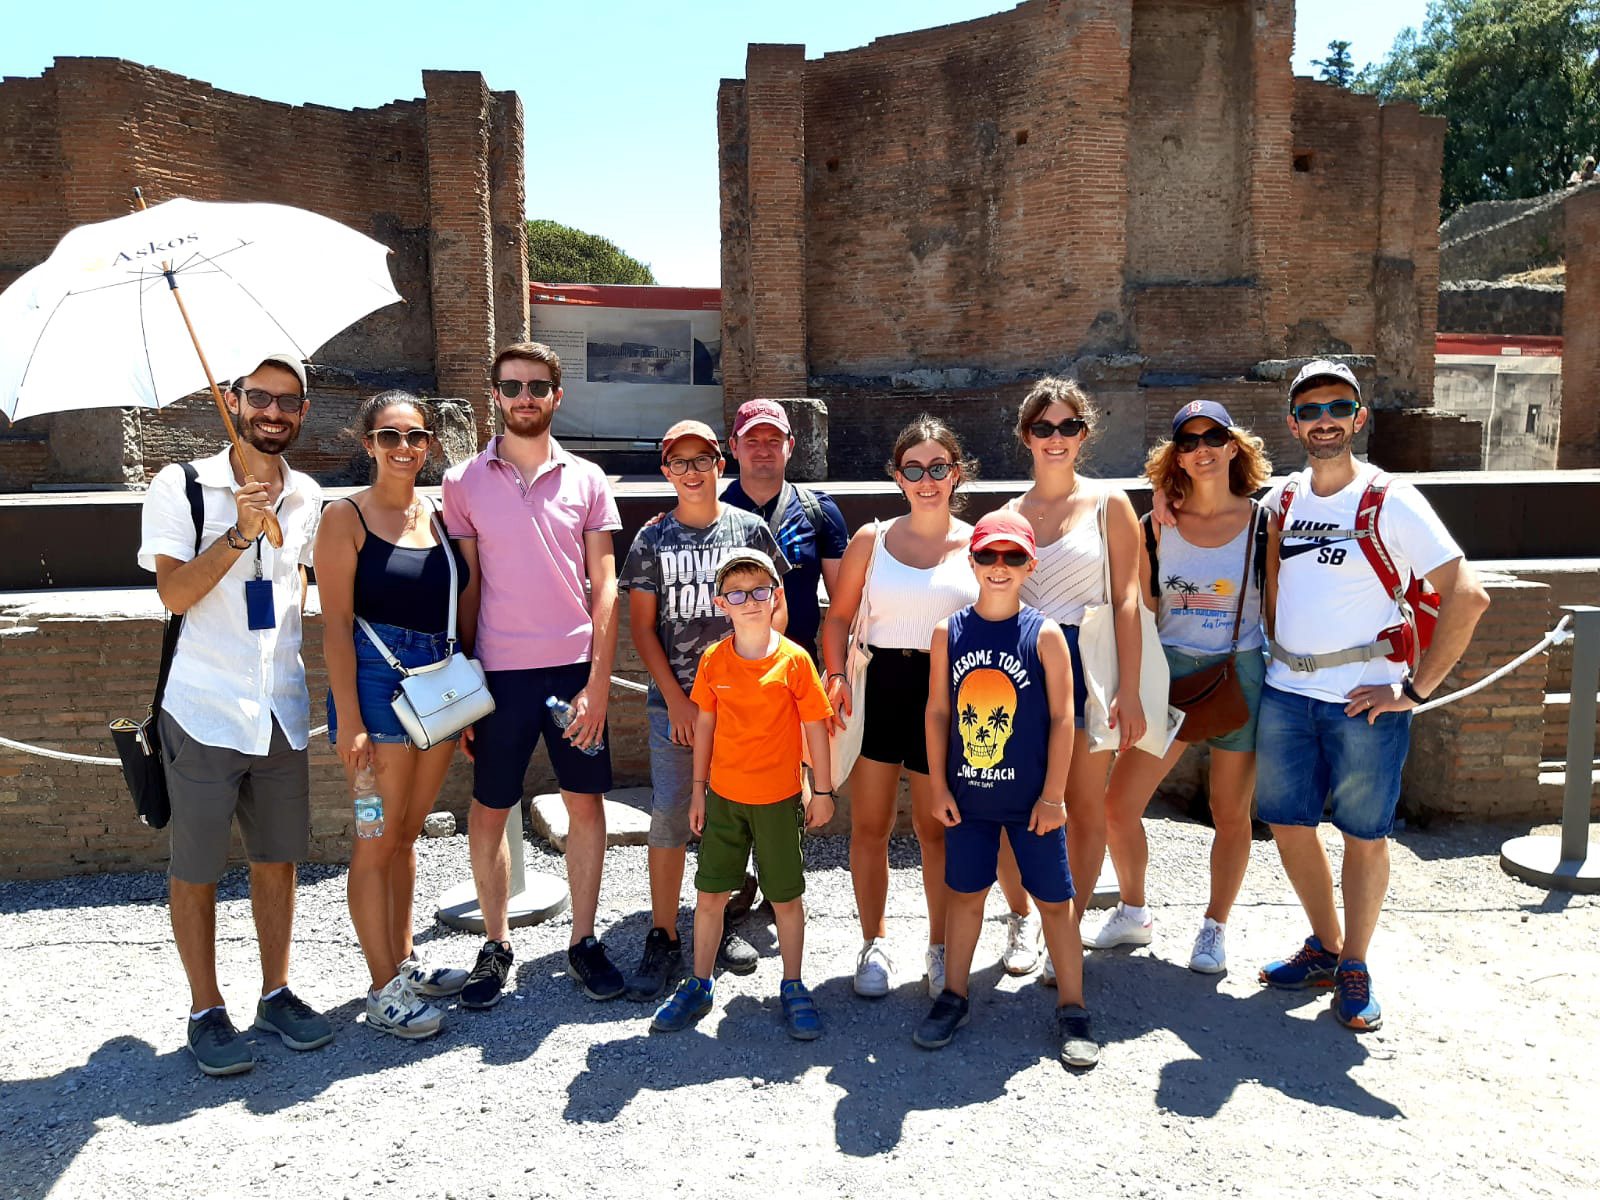 All in one day! Herculaneum and Pompeii tours with your very own personal expert guide